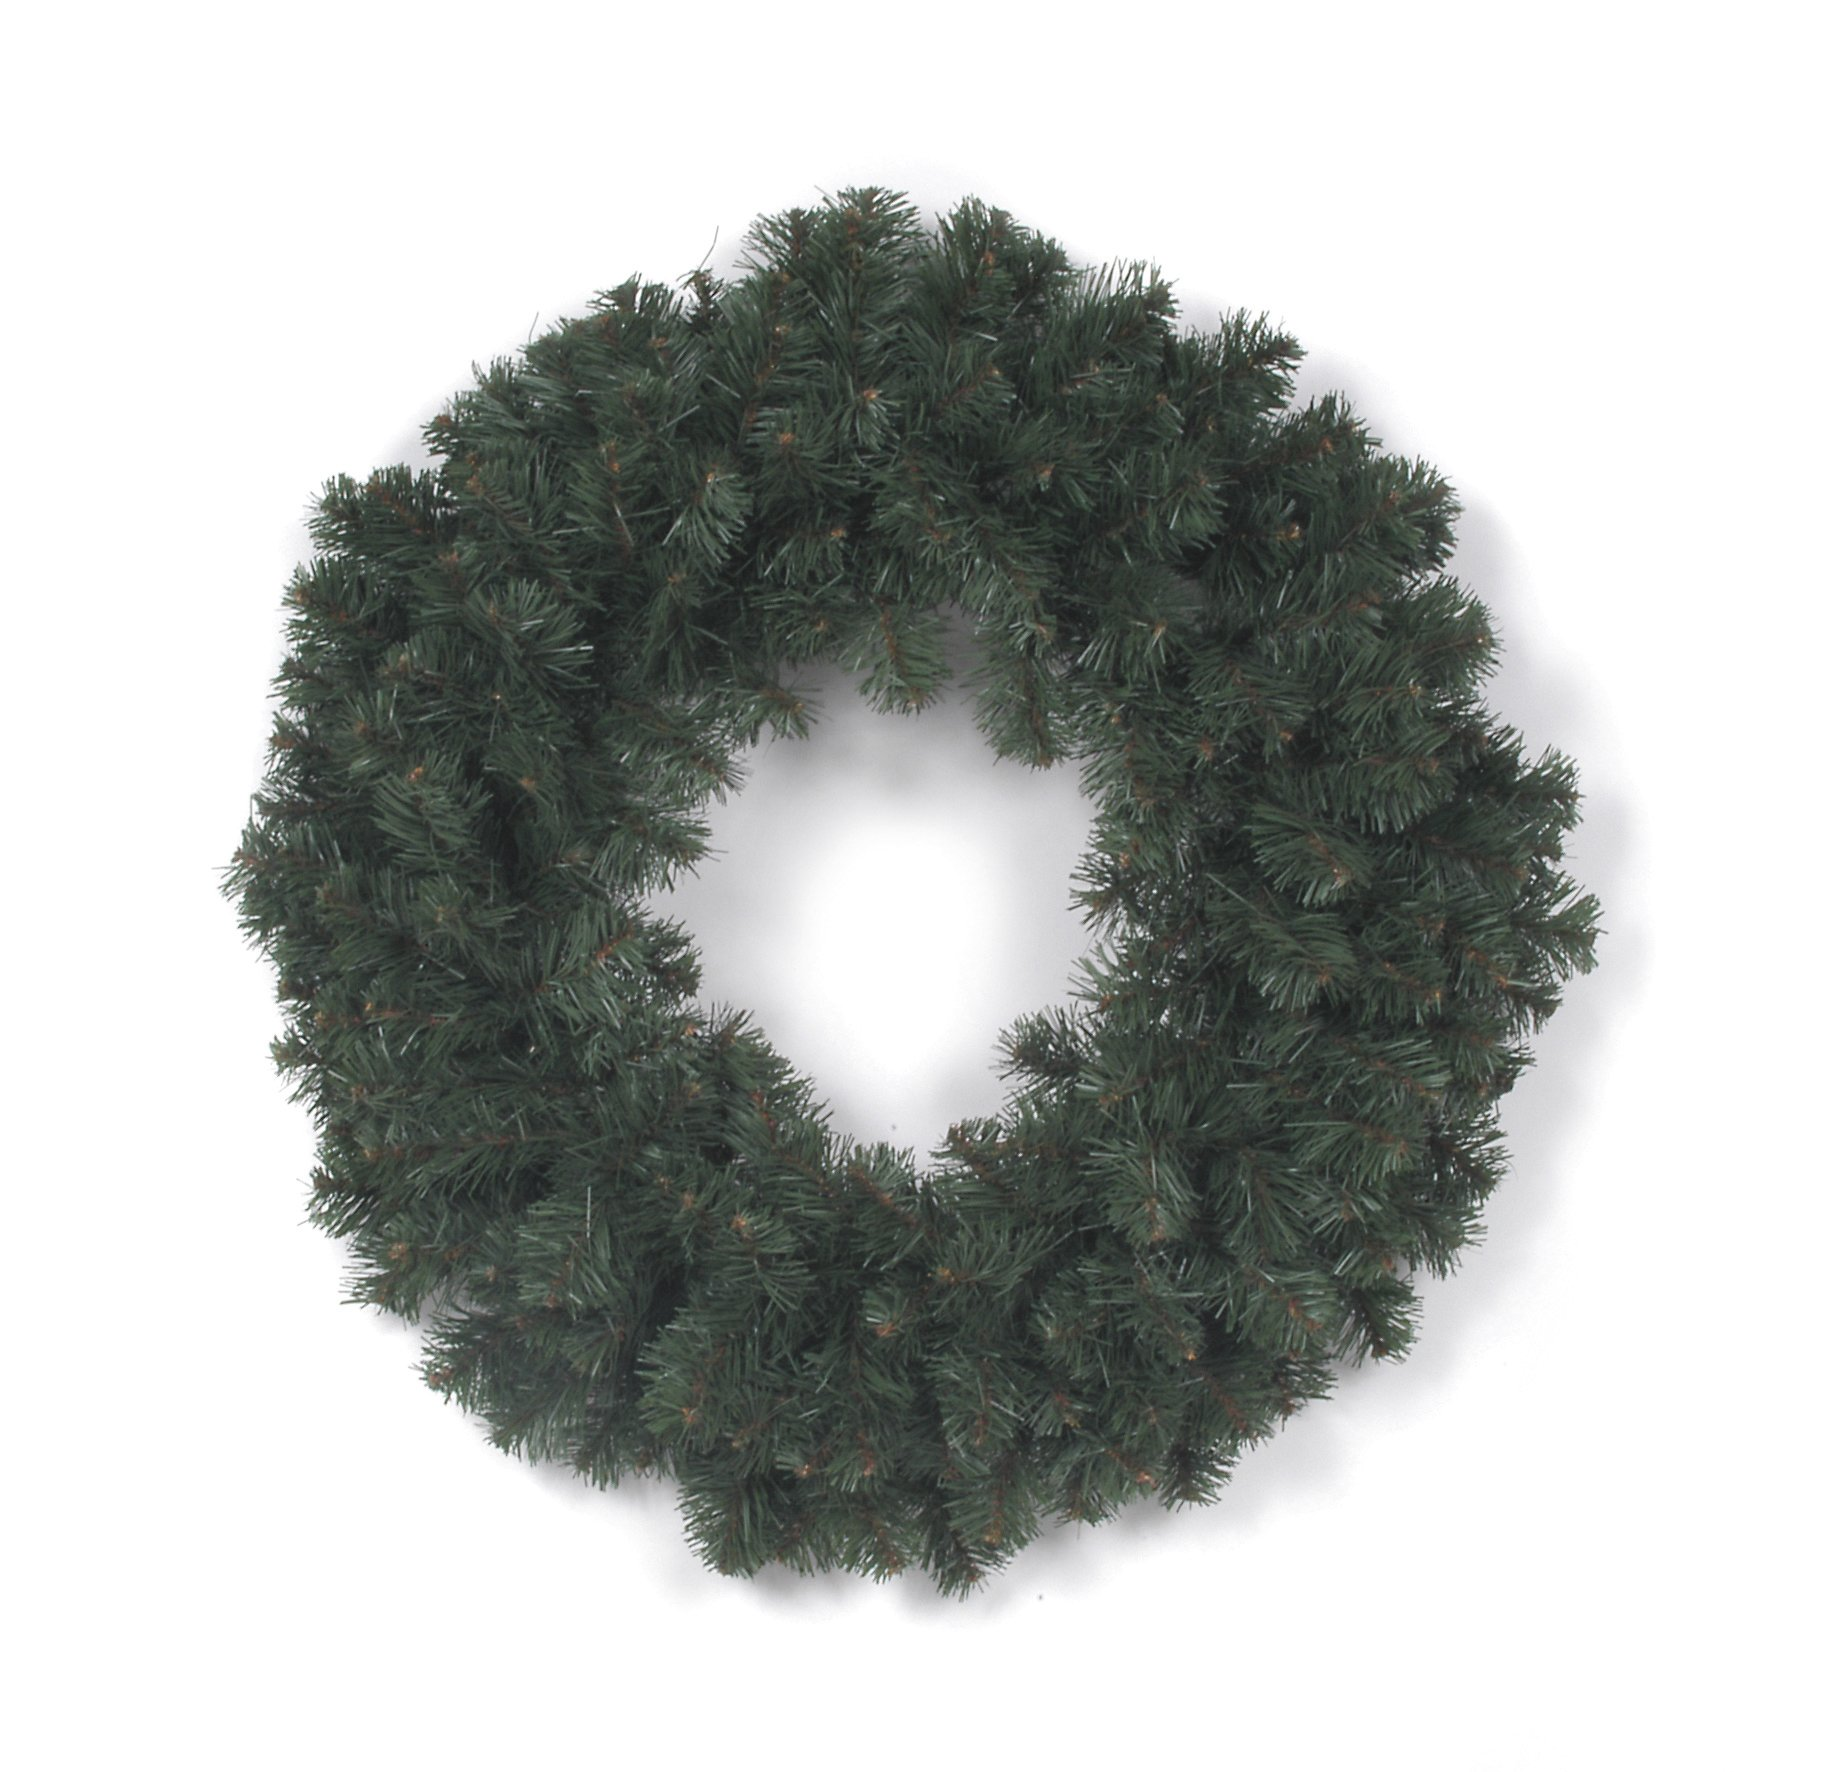 Artificial Colorado Pine Christmas Wreath - 200 tips - 24 inches (1 pack)